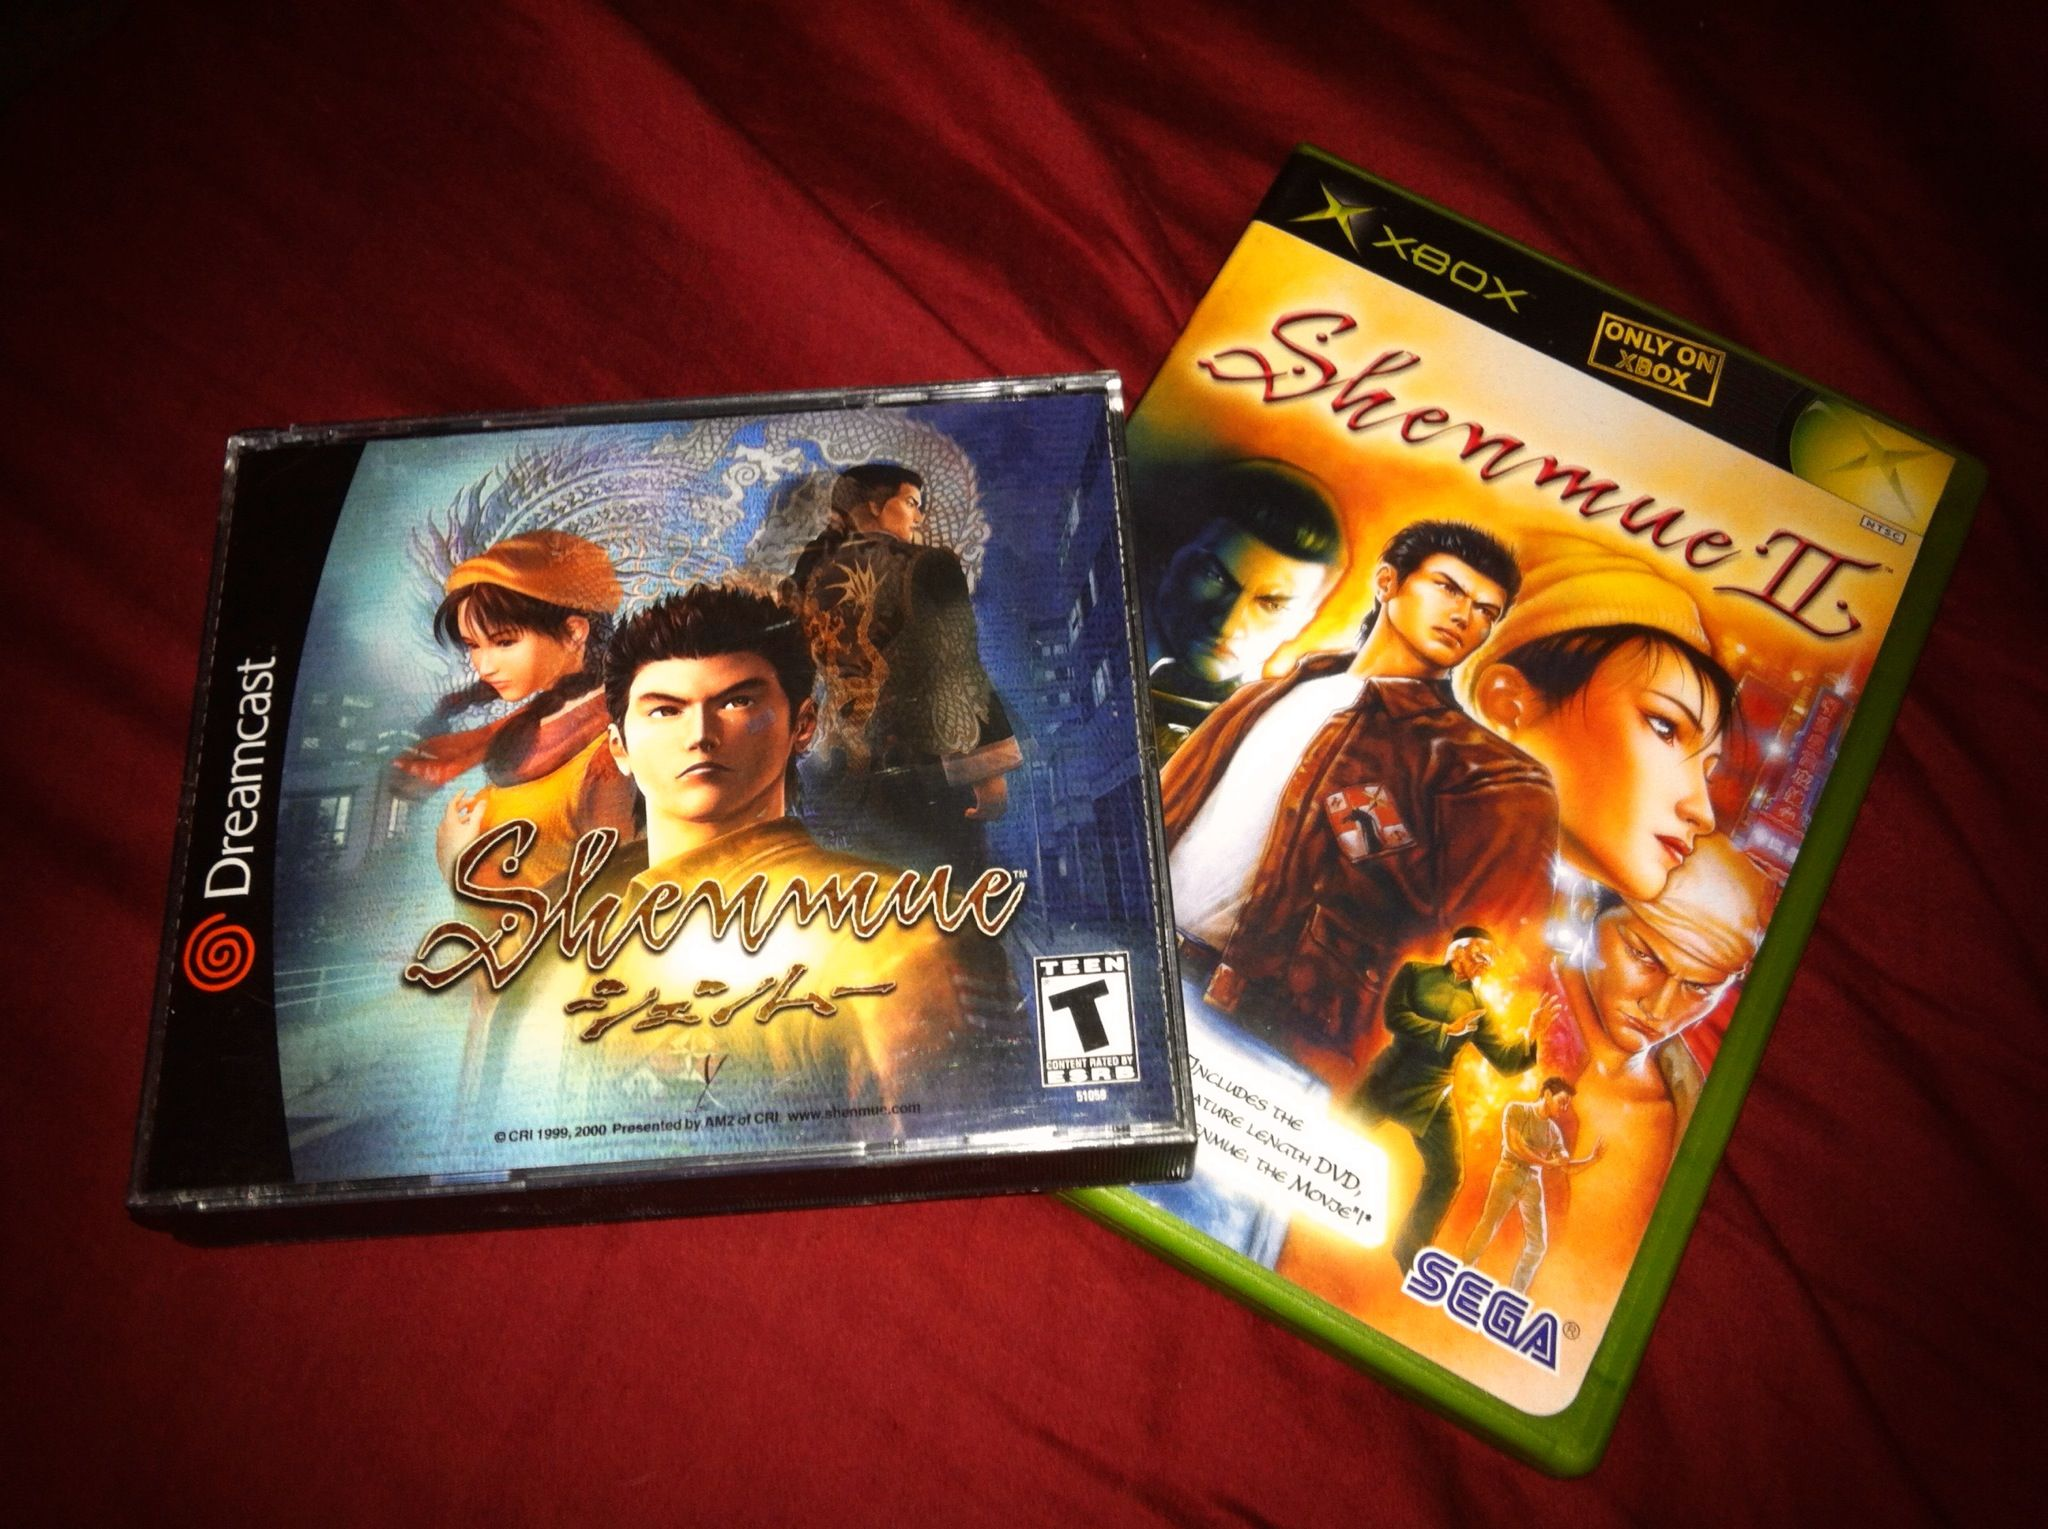 Shemnue and Shenmue II  http://www.kotaku.com.au/2012/01/yu-suzuki-is-still-talking-about-shenmue-3/  I'm one of those poor people waiting for the third installment to this series. Come out already!